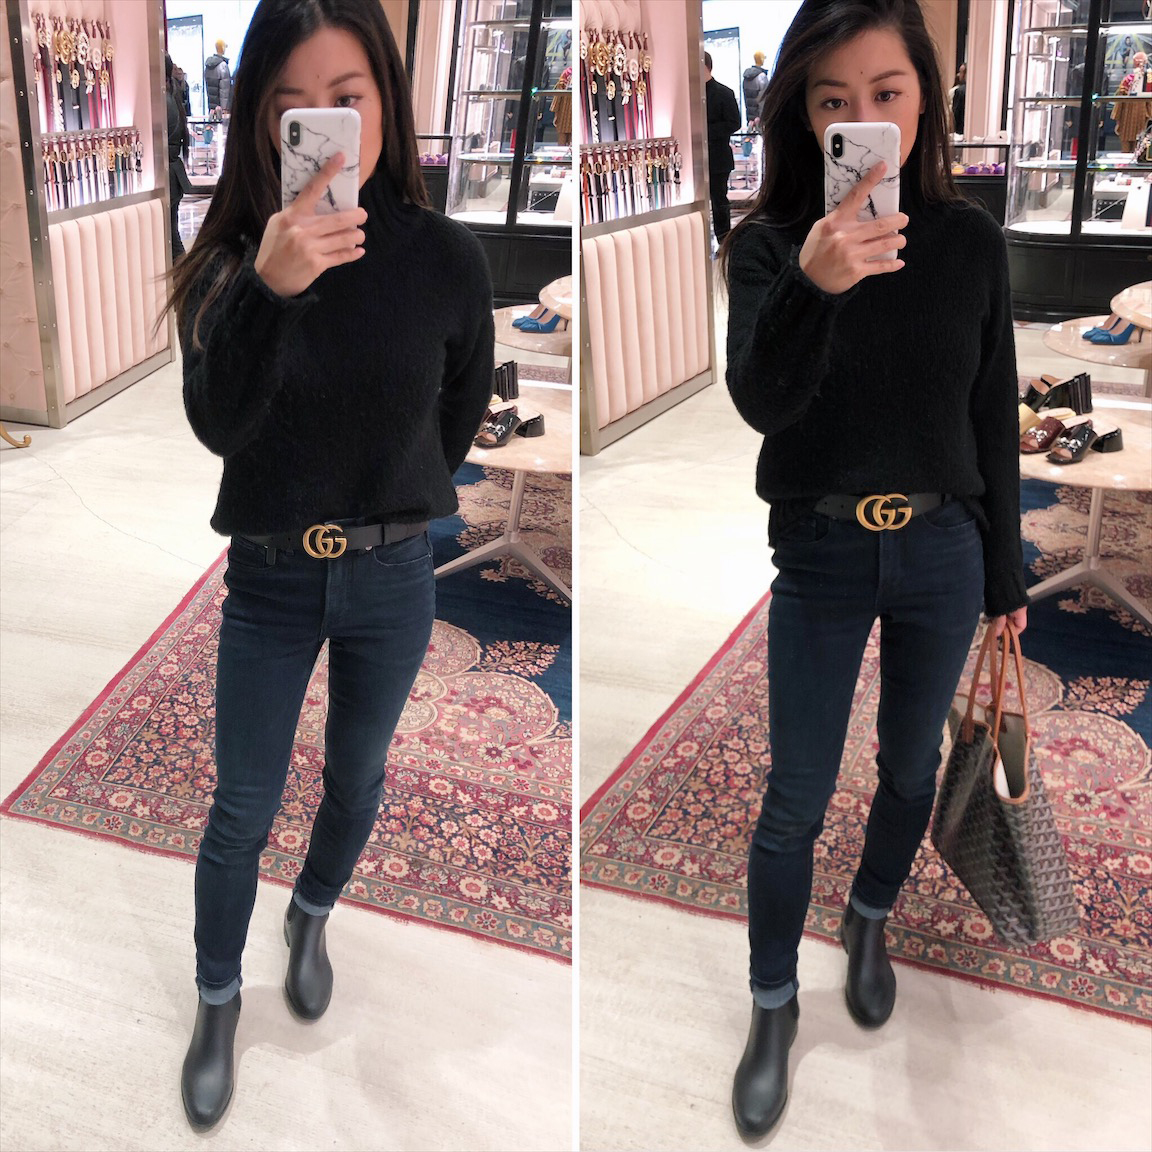 Gucci Belt Review + Comparison How to Choose Size and Width